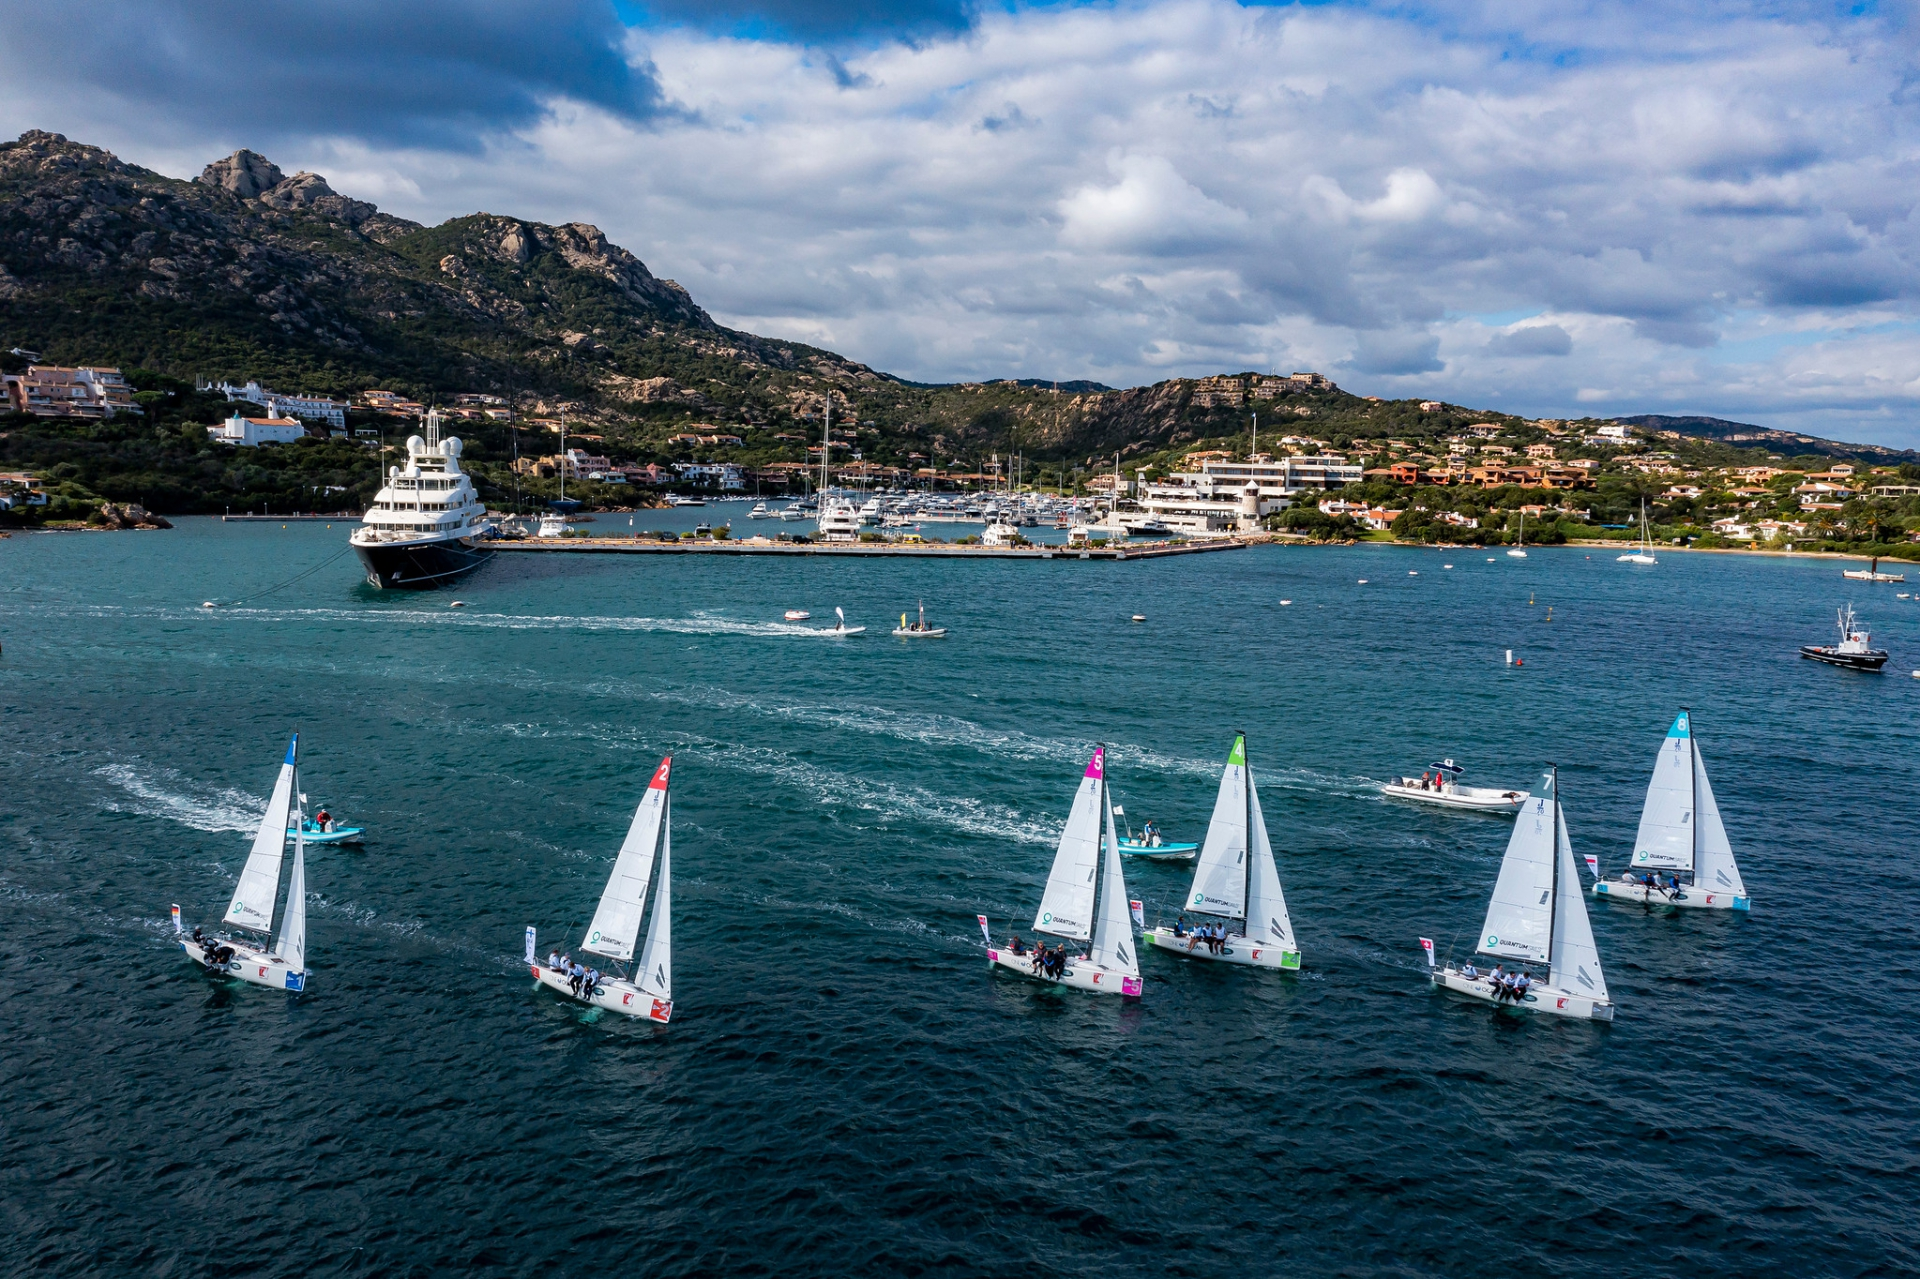 Intense second day of stadium racing in SAILING Champions League Final - NEWS - Yacht Club Costa Smeralda